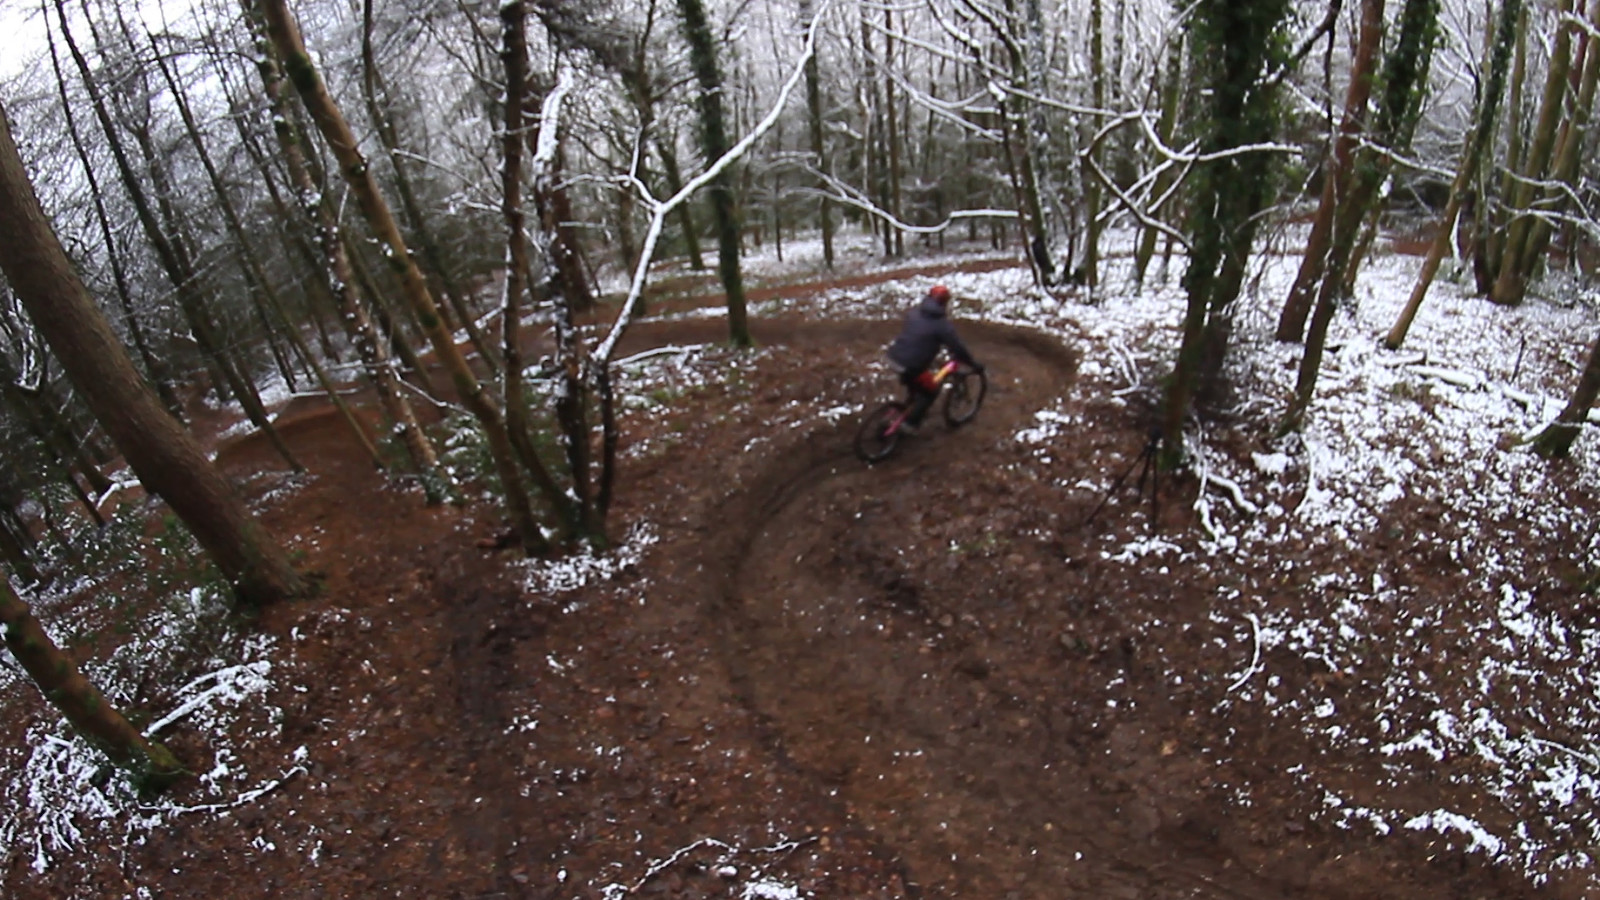 JACK TOM Shr-Edit - Matthew Davies - Mountain Biking Pictures - Vital MTB